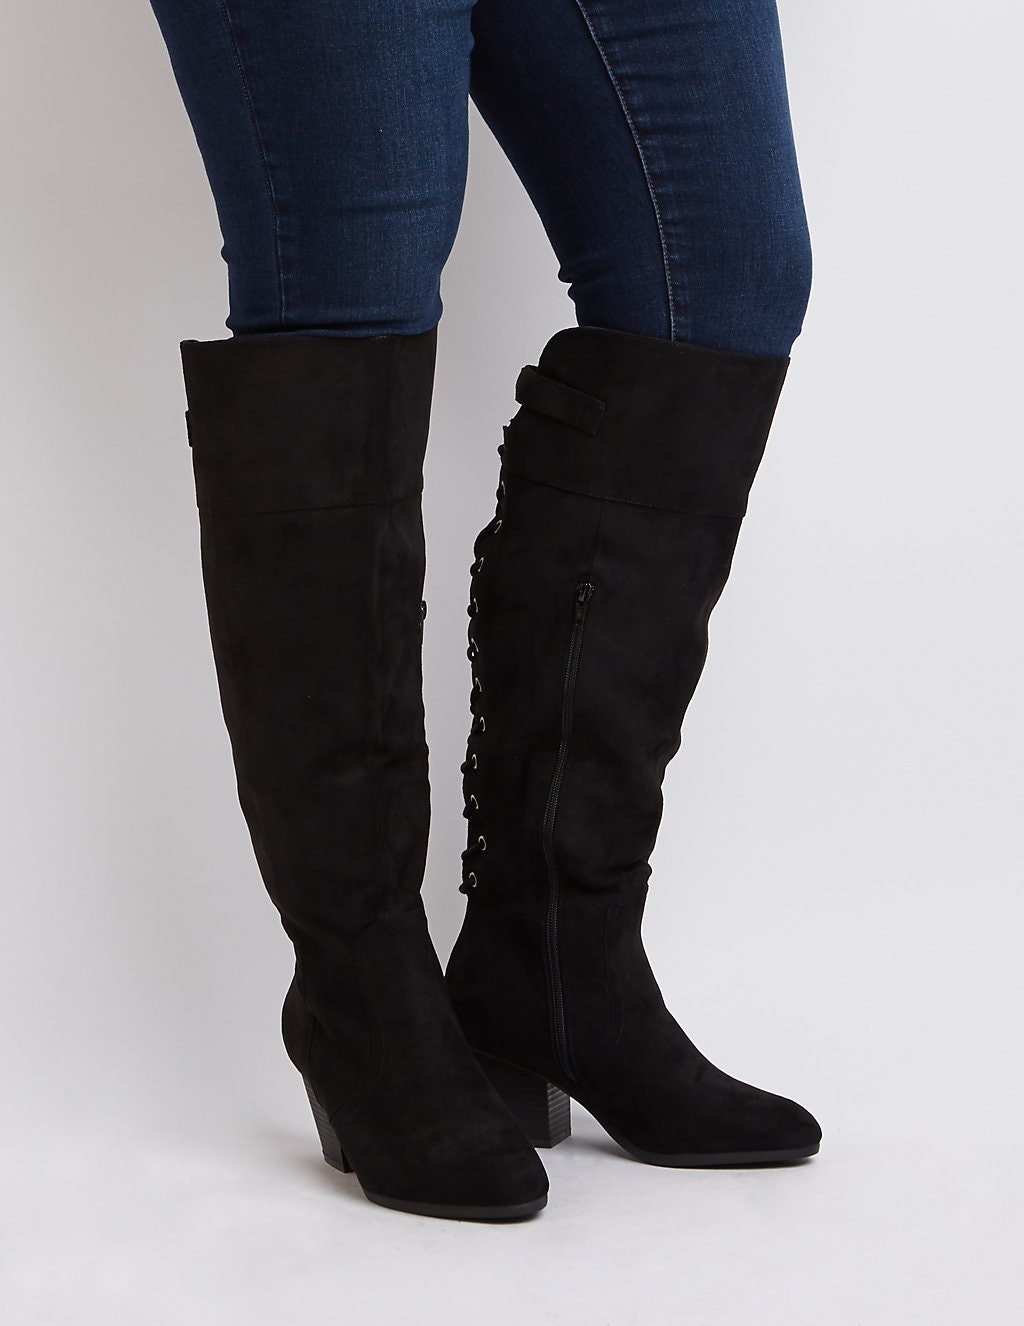 13 Wide Calf Boots For The Best Back-To